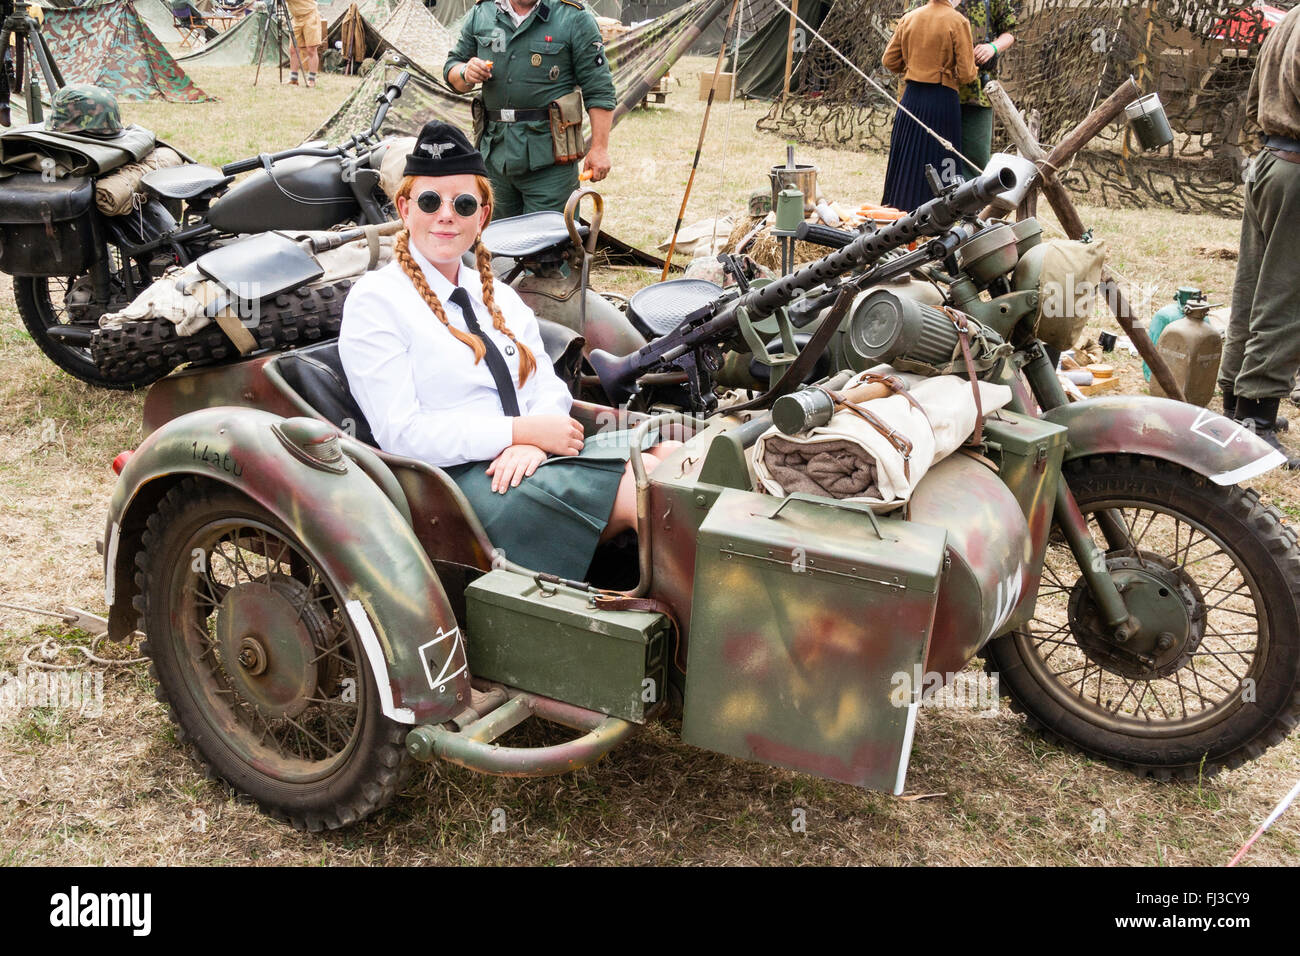 Second world war re-enactment. German motorbike machine gun and side car with young red hairrd uniformed German - Stock Image